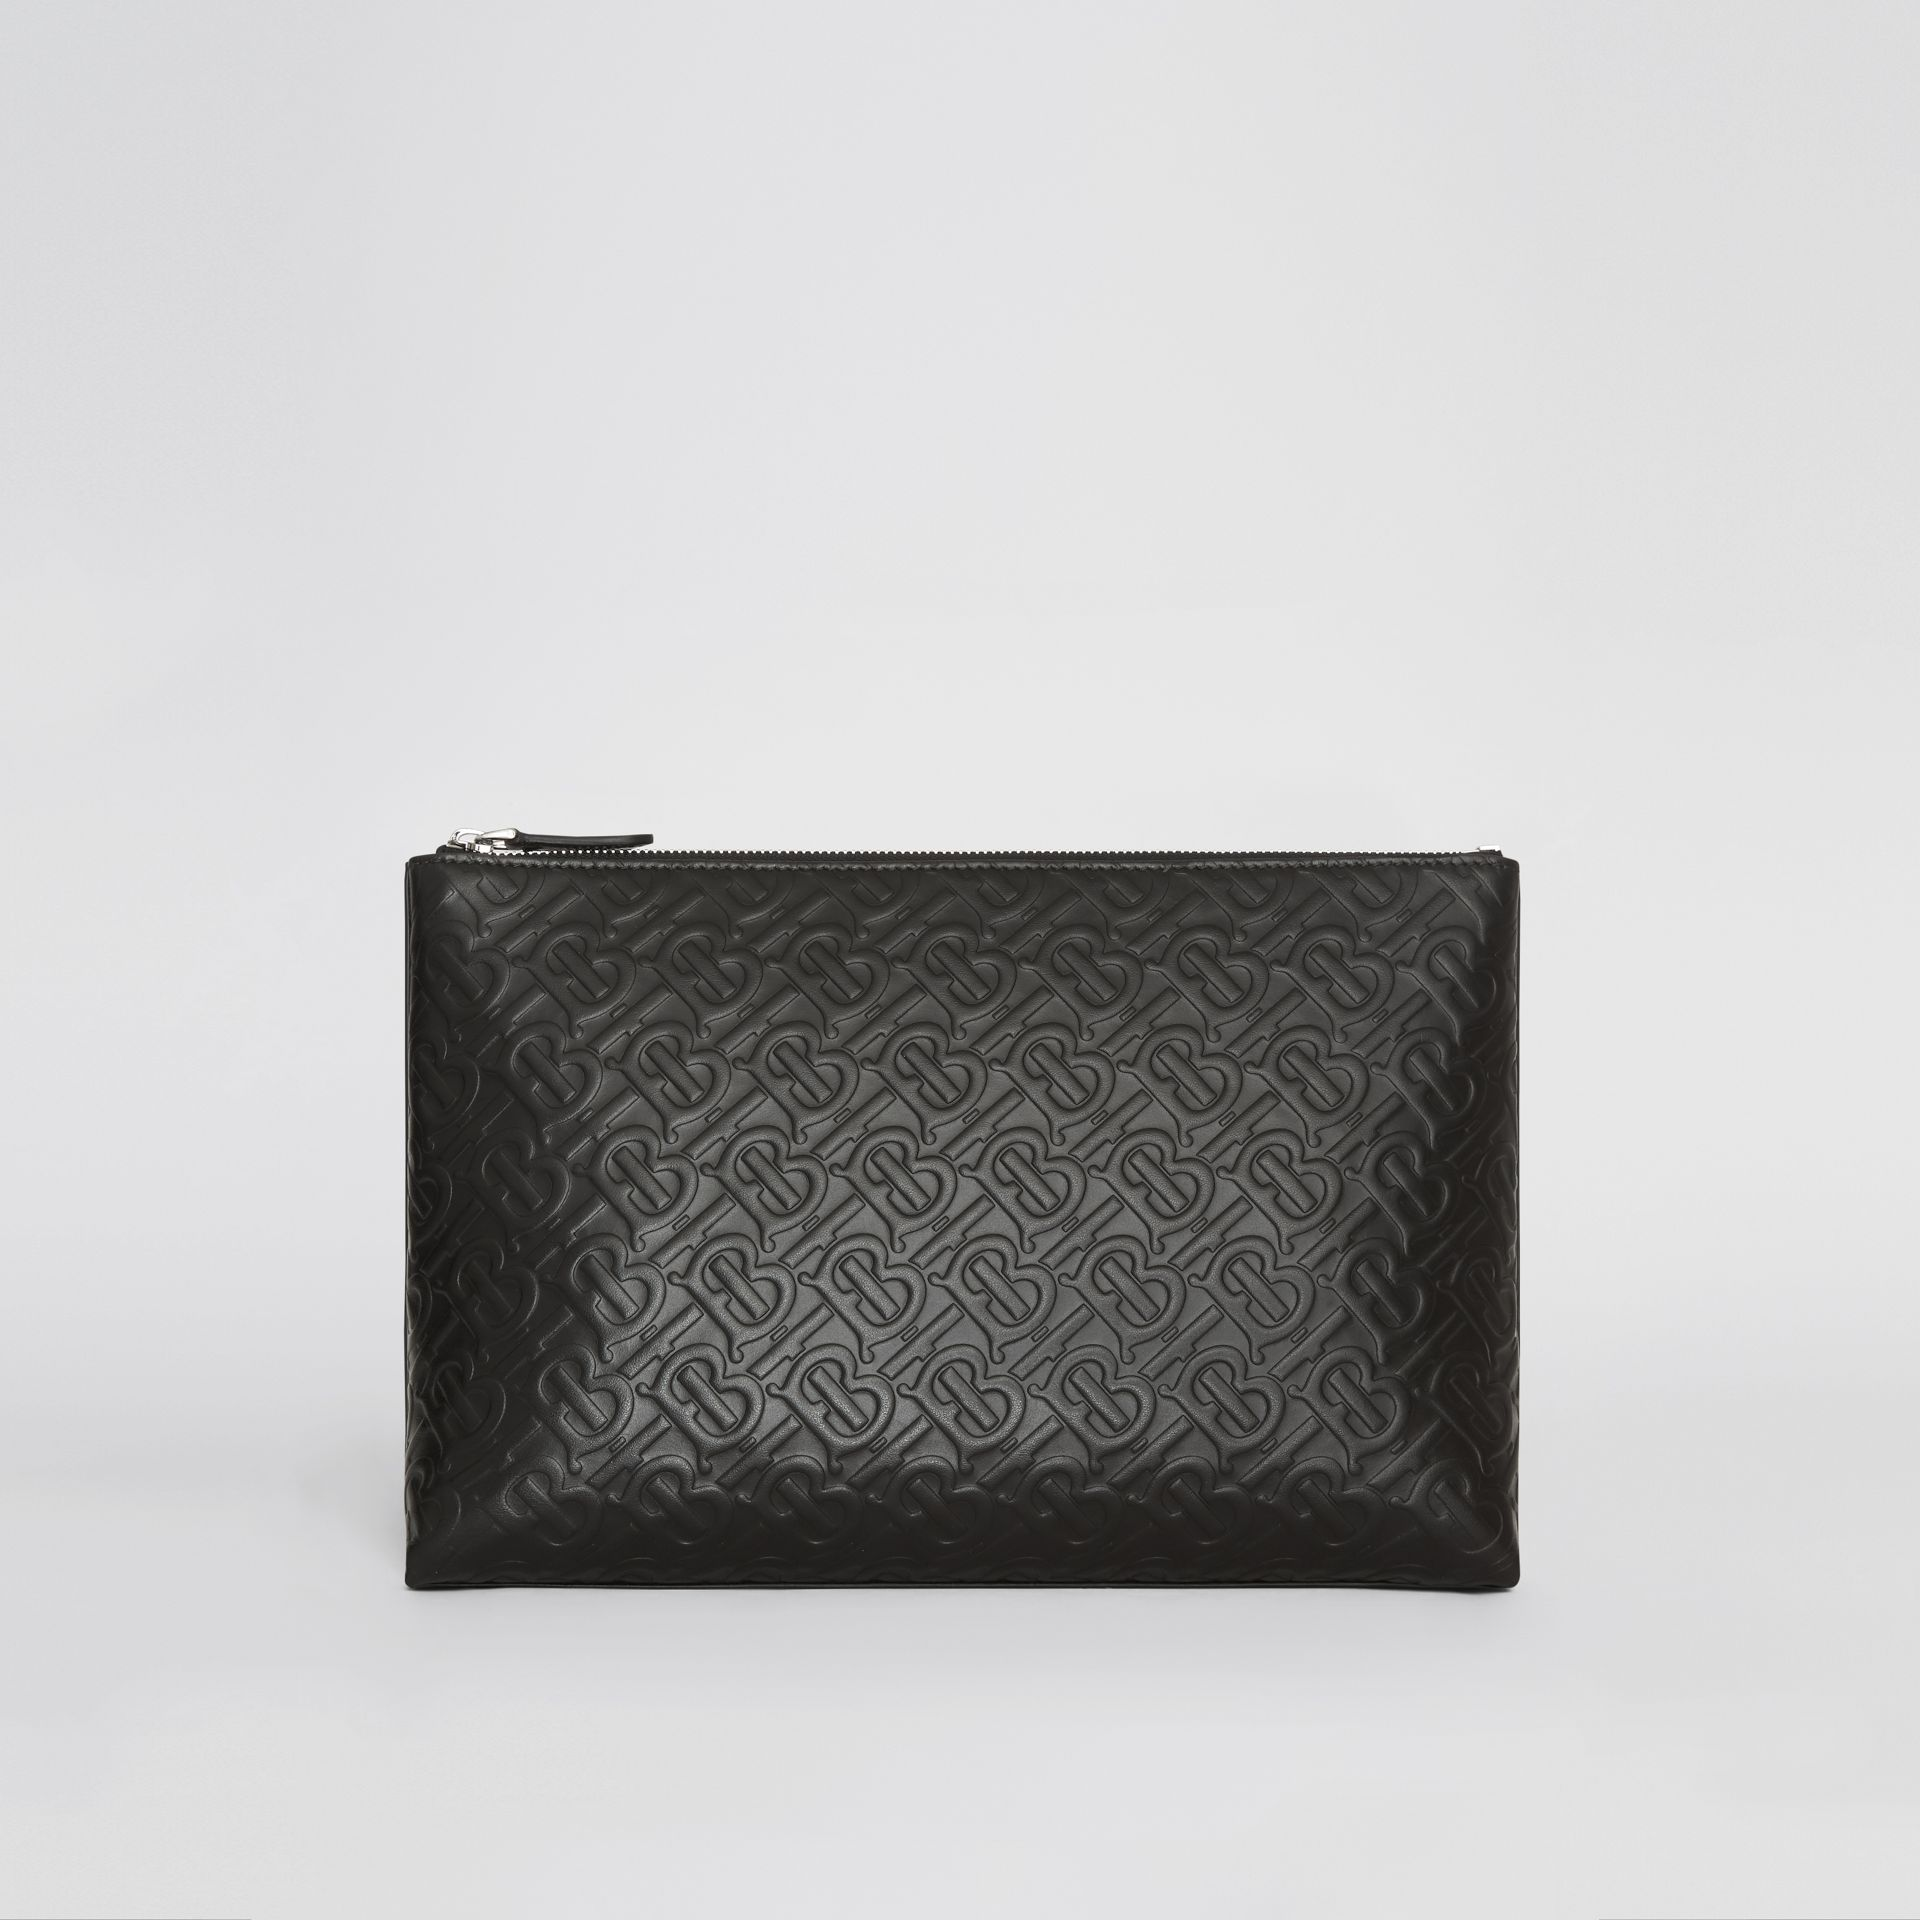 Monogram Leather Zip Pouch in Black - Men | Burberry Canada - gallery image 6